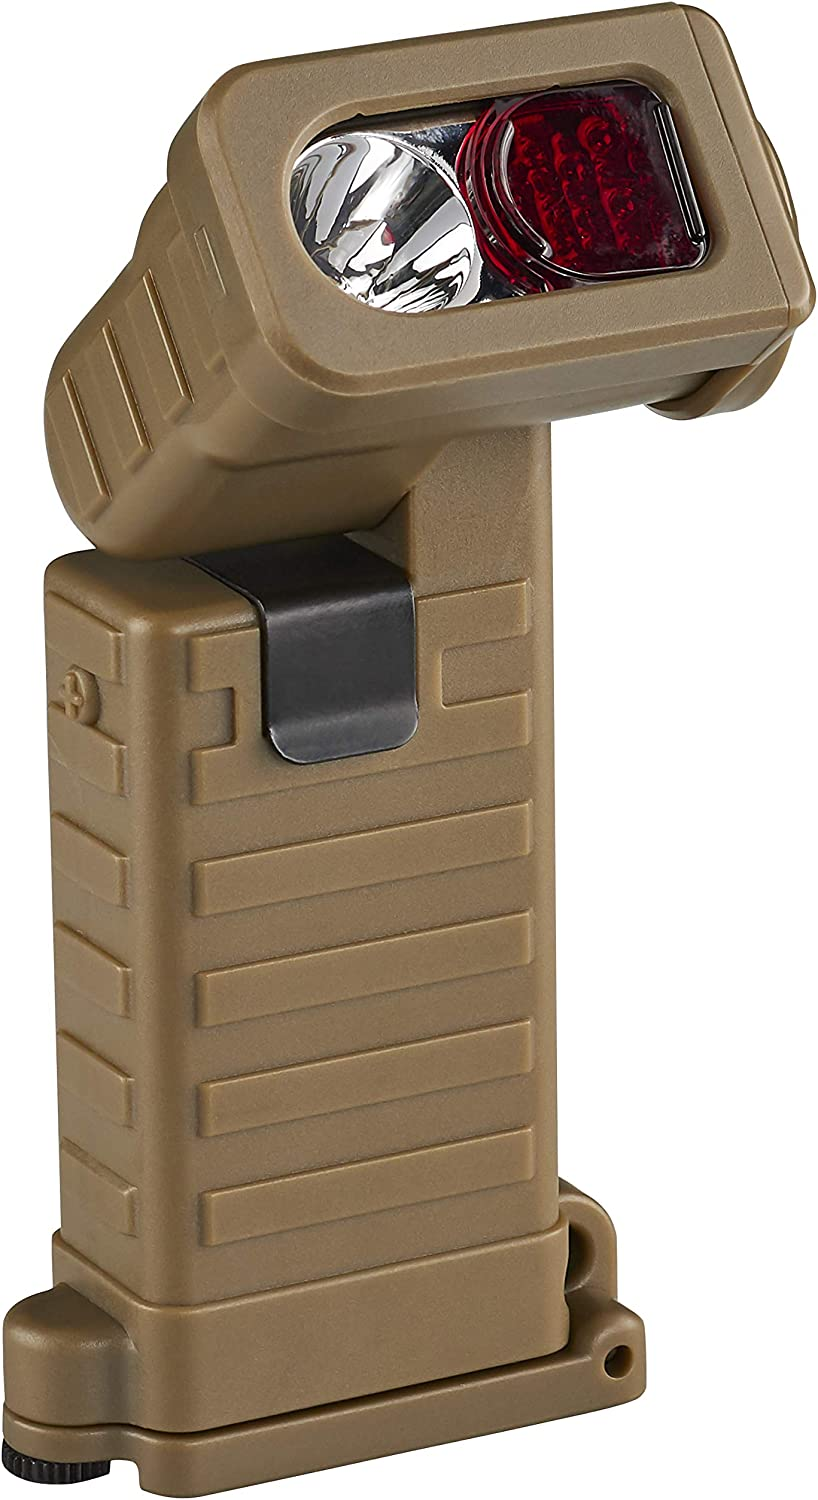 This is an image of a Streamlight Sidewinder Boot Light Tactical Flashlight in brown color.